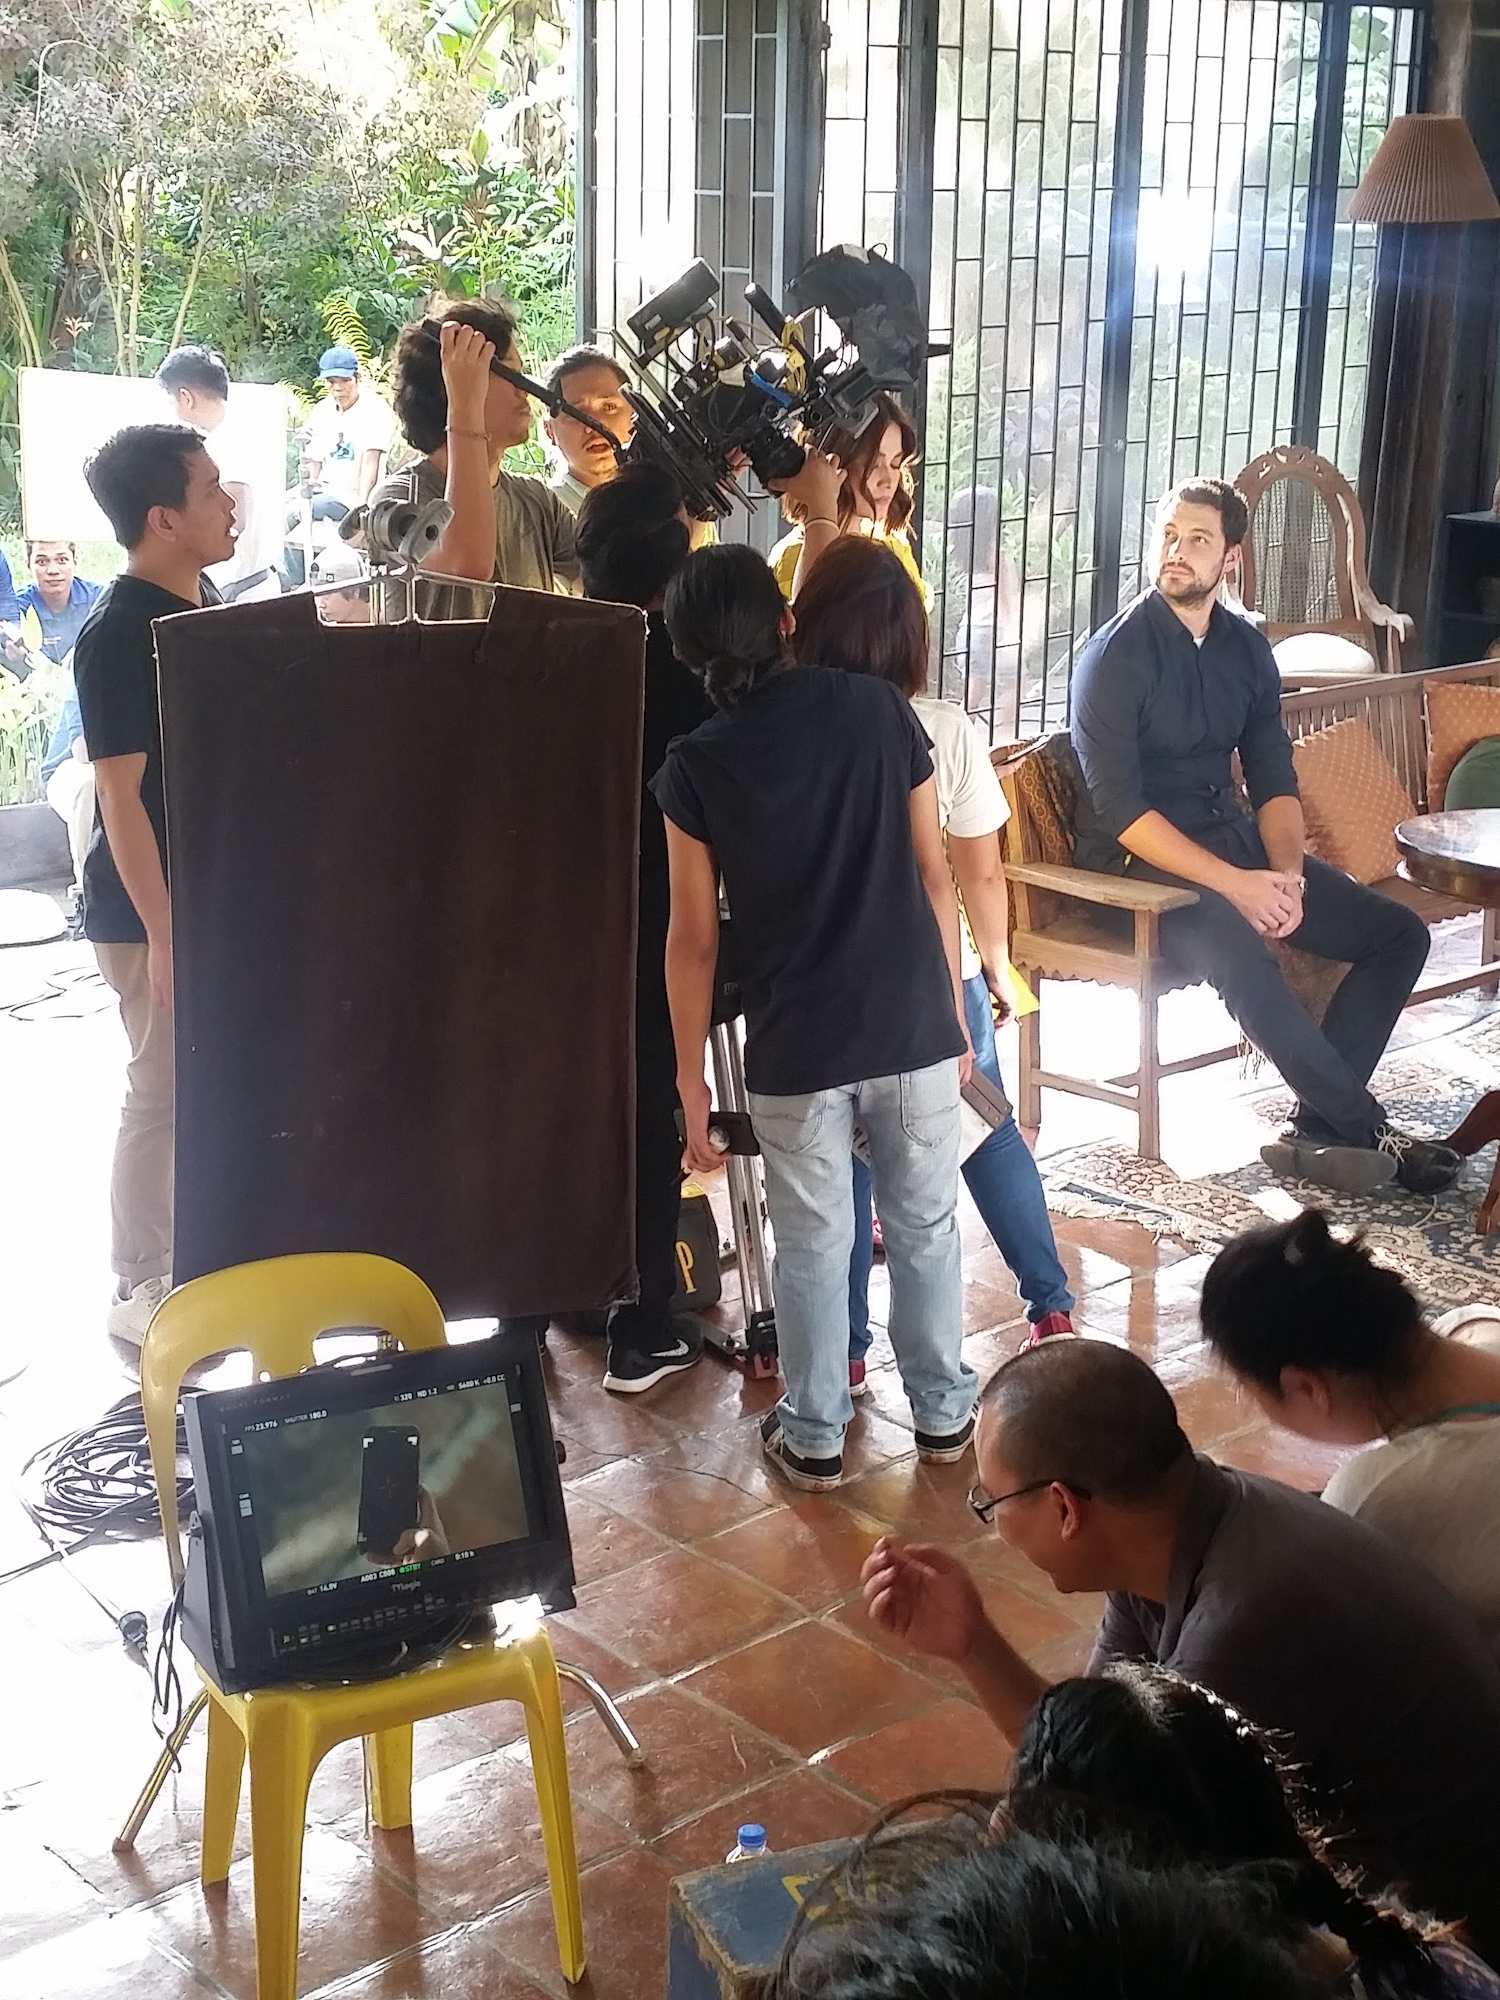 Setting up another shot